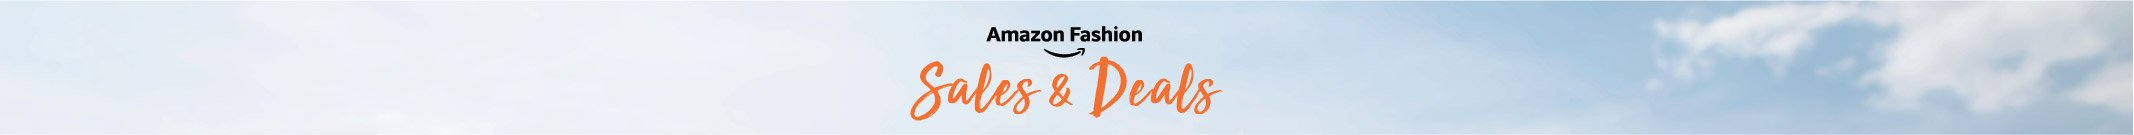 Amazon Fashion Sales & Deals